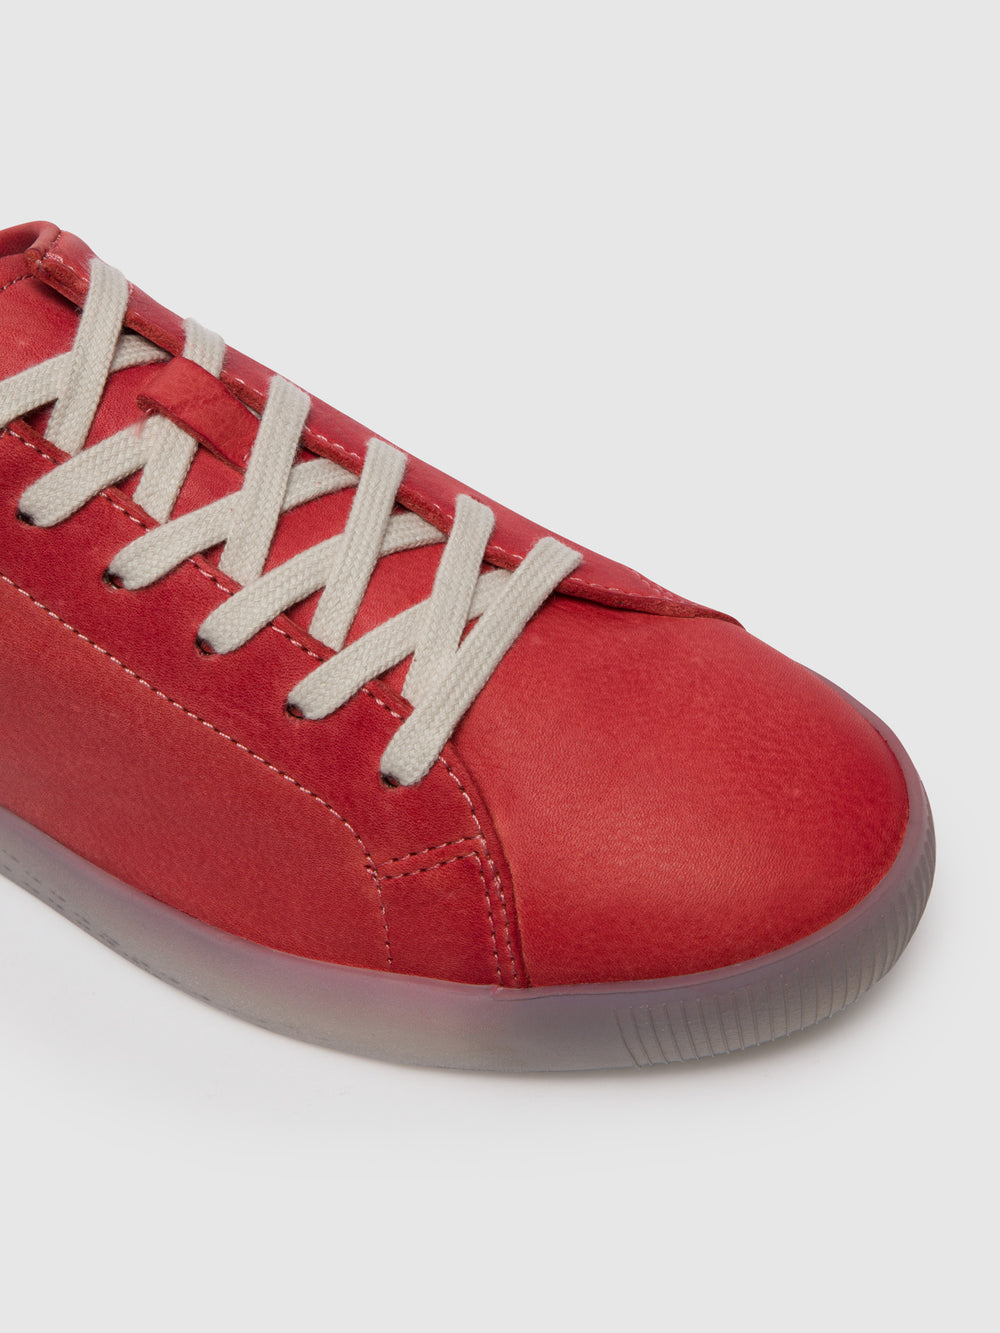 Lace-up Trainers SADY584SOF Red